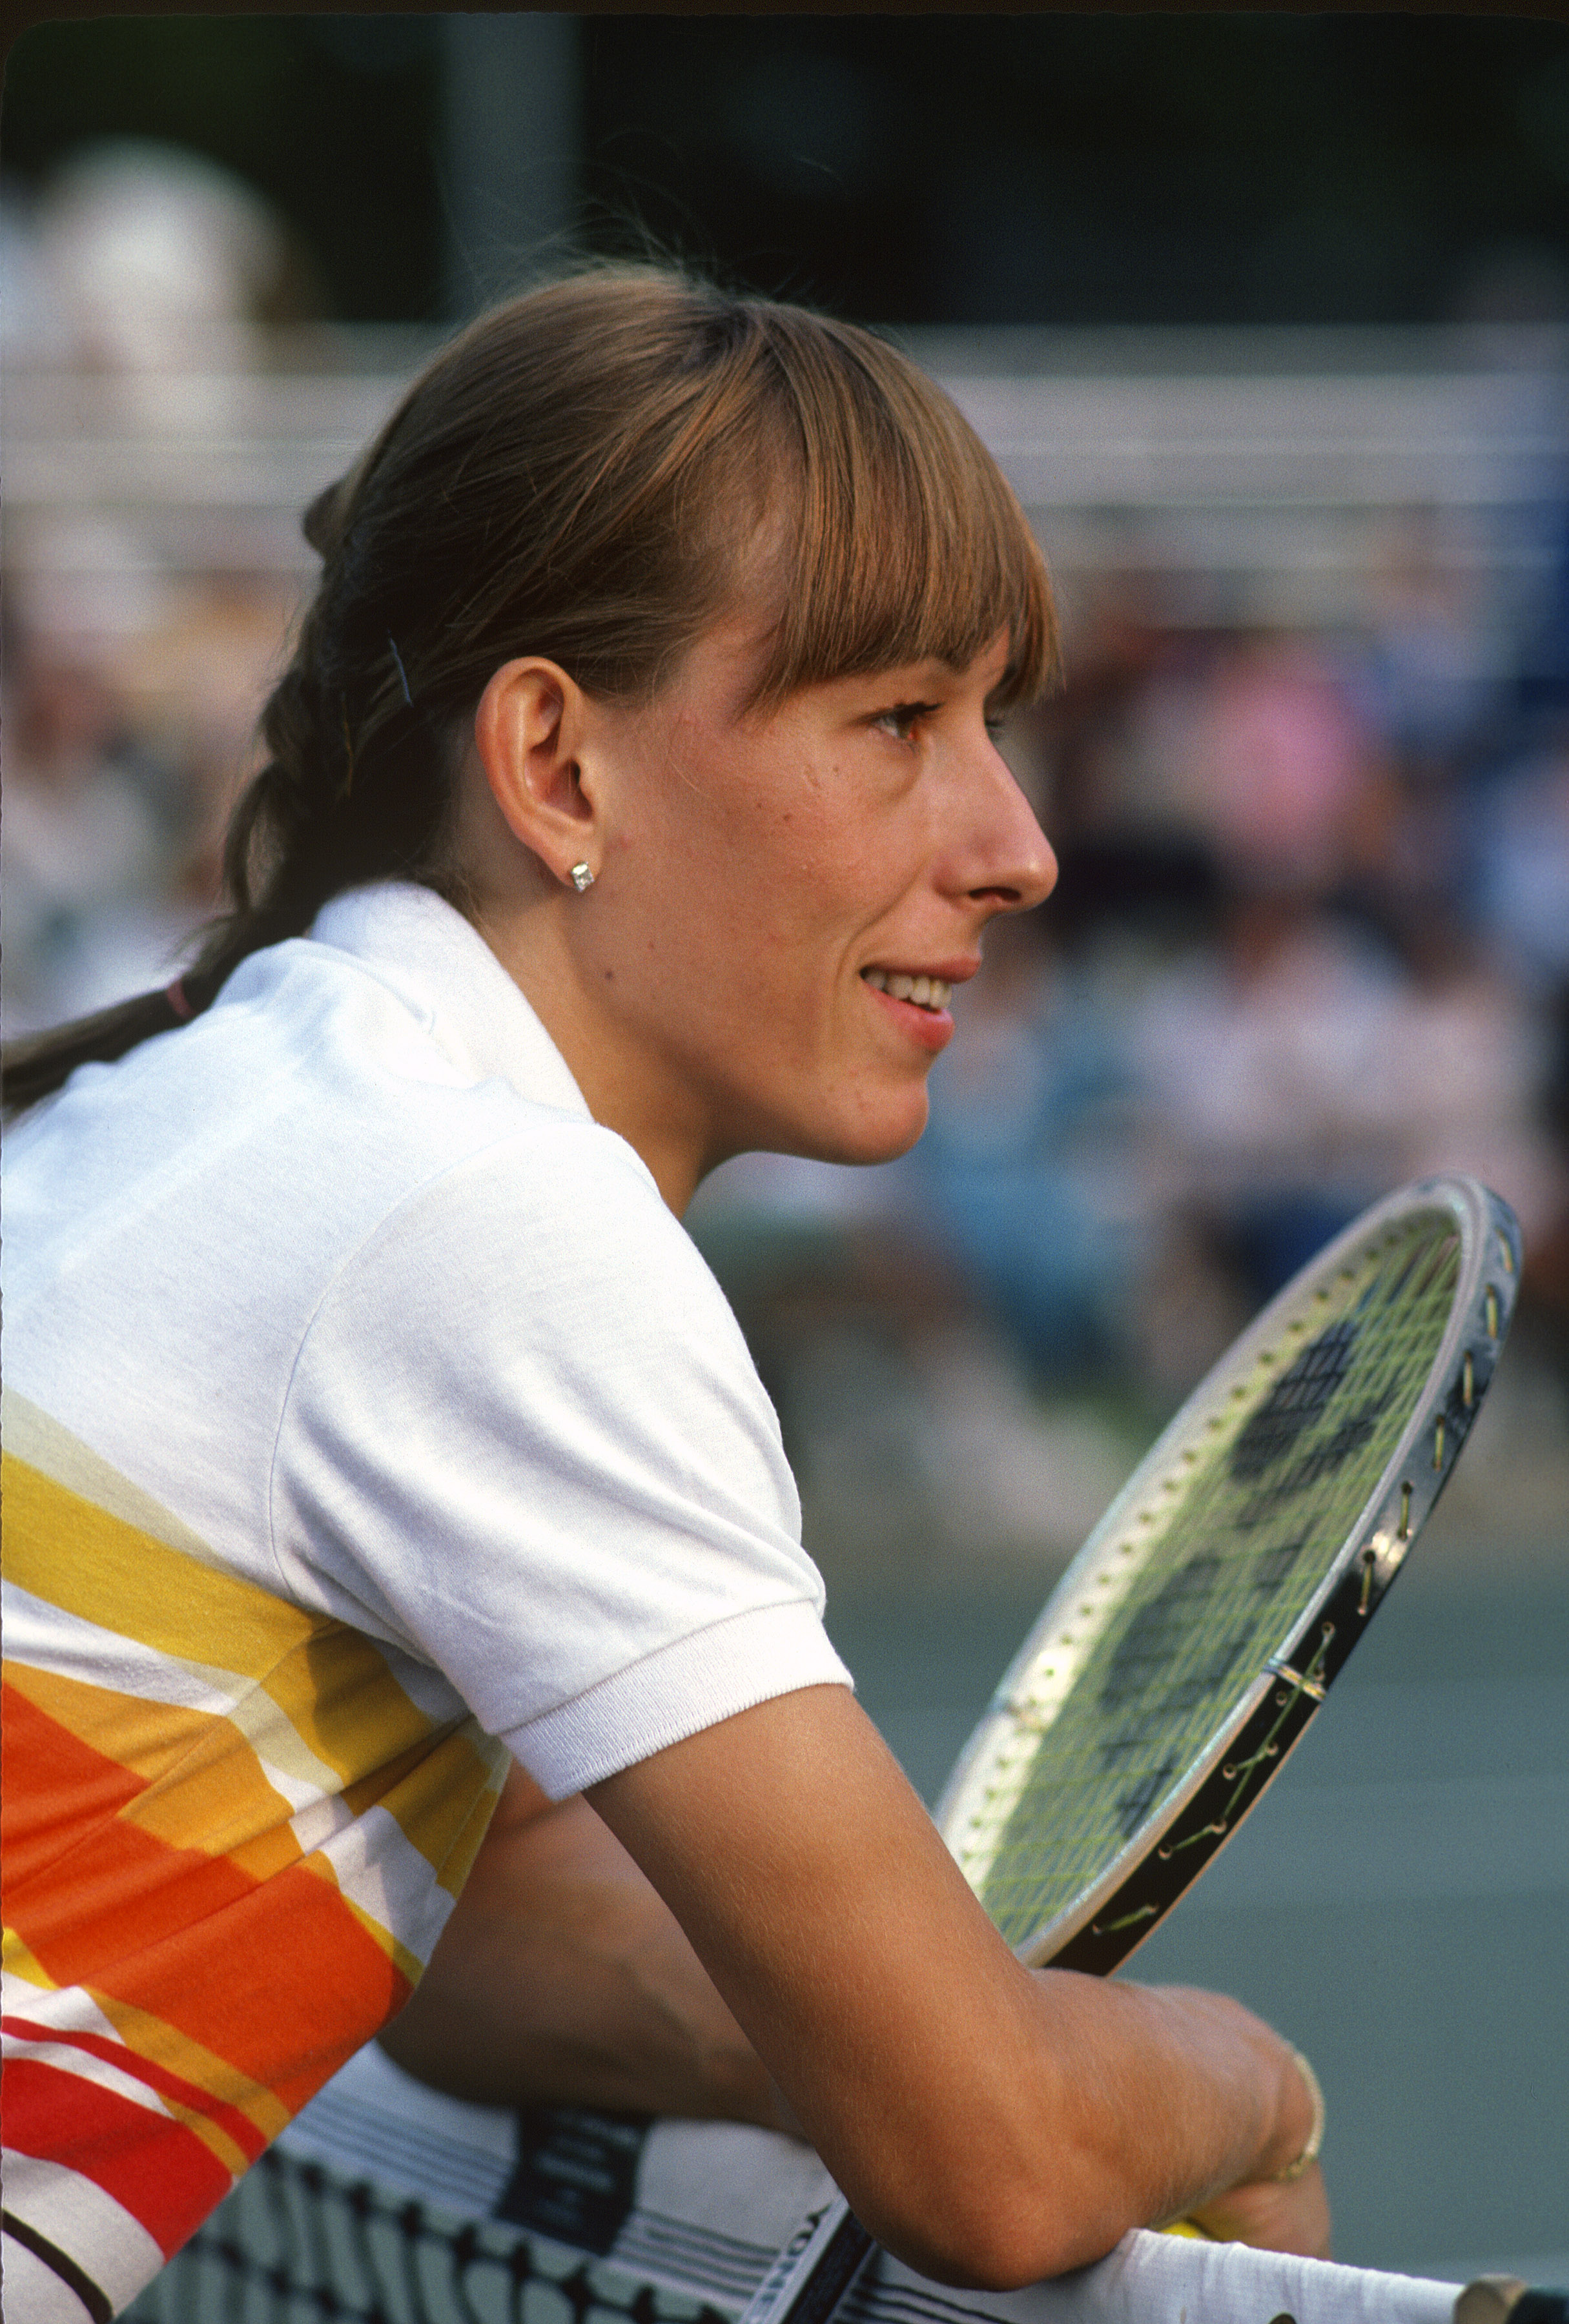 <b>Martina Navratilova</b> Born in Prague, Martina Navratilova wanted to conquer the tennis world, and she knew she had a better shot at doing that in the U.S. than in communist Czechoslovakia. So during the 1975 U.S. Open, American authorities helped her defect, the Czech government subsequently stripped her of her citizenship, and she went on to dominate women's tennis, winning 18 Grand Slam singles titles.